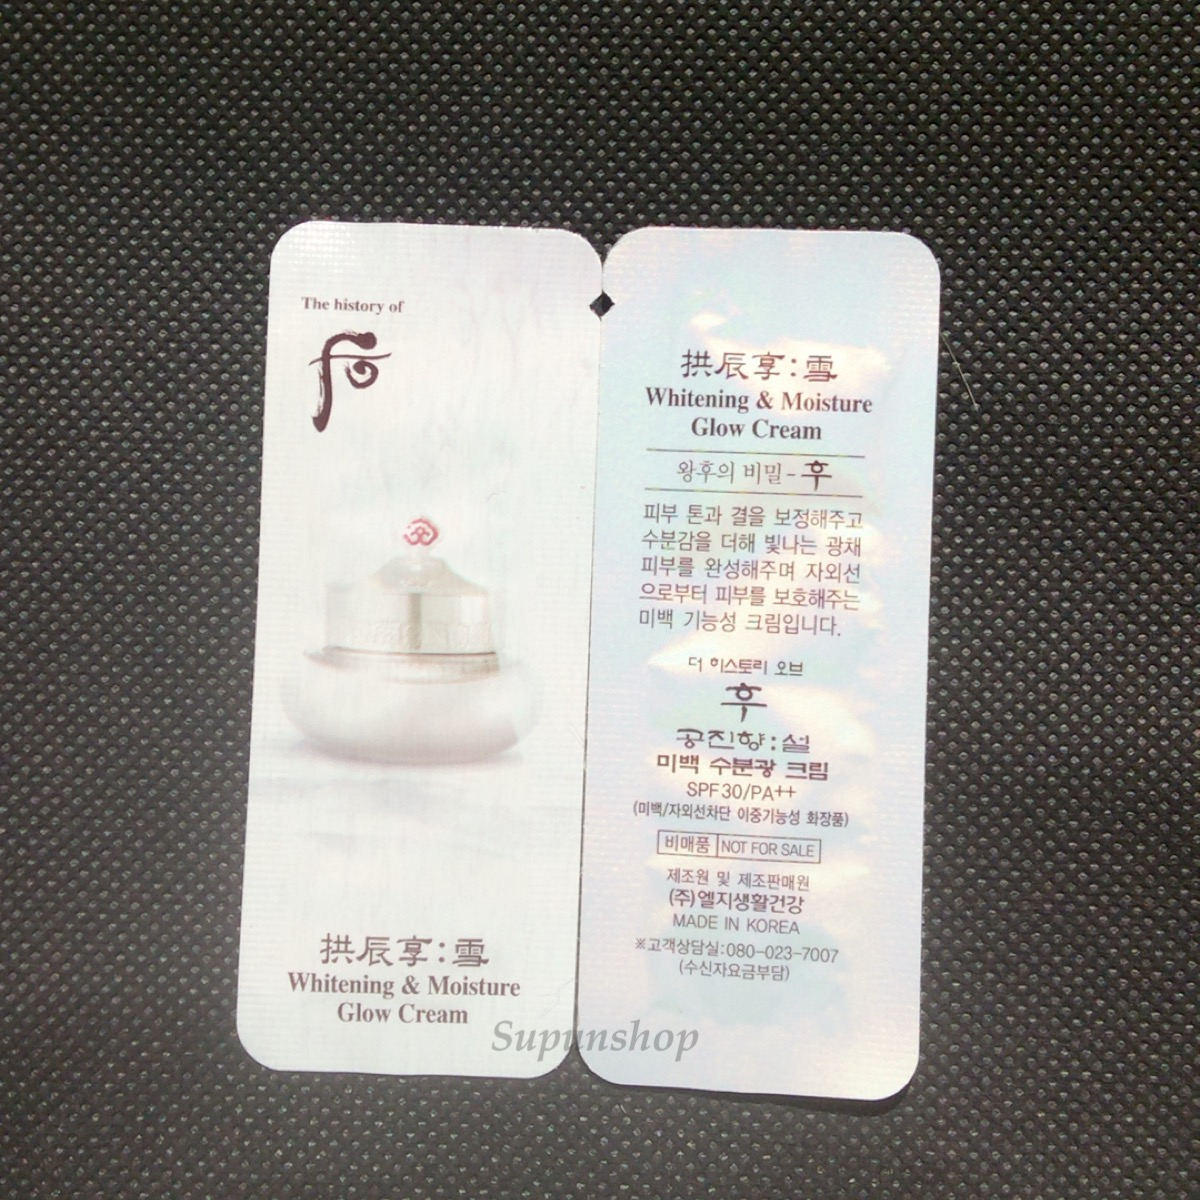 ++พร้อมส่ง++The History of Whoo Gongjinhyang Seol Whitening & Moisture Glow Cream SPF30/PA++ 1ml